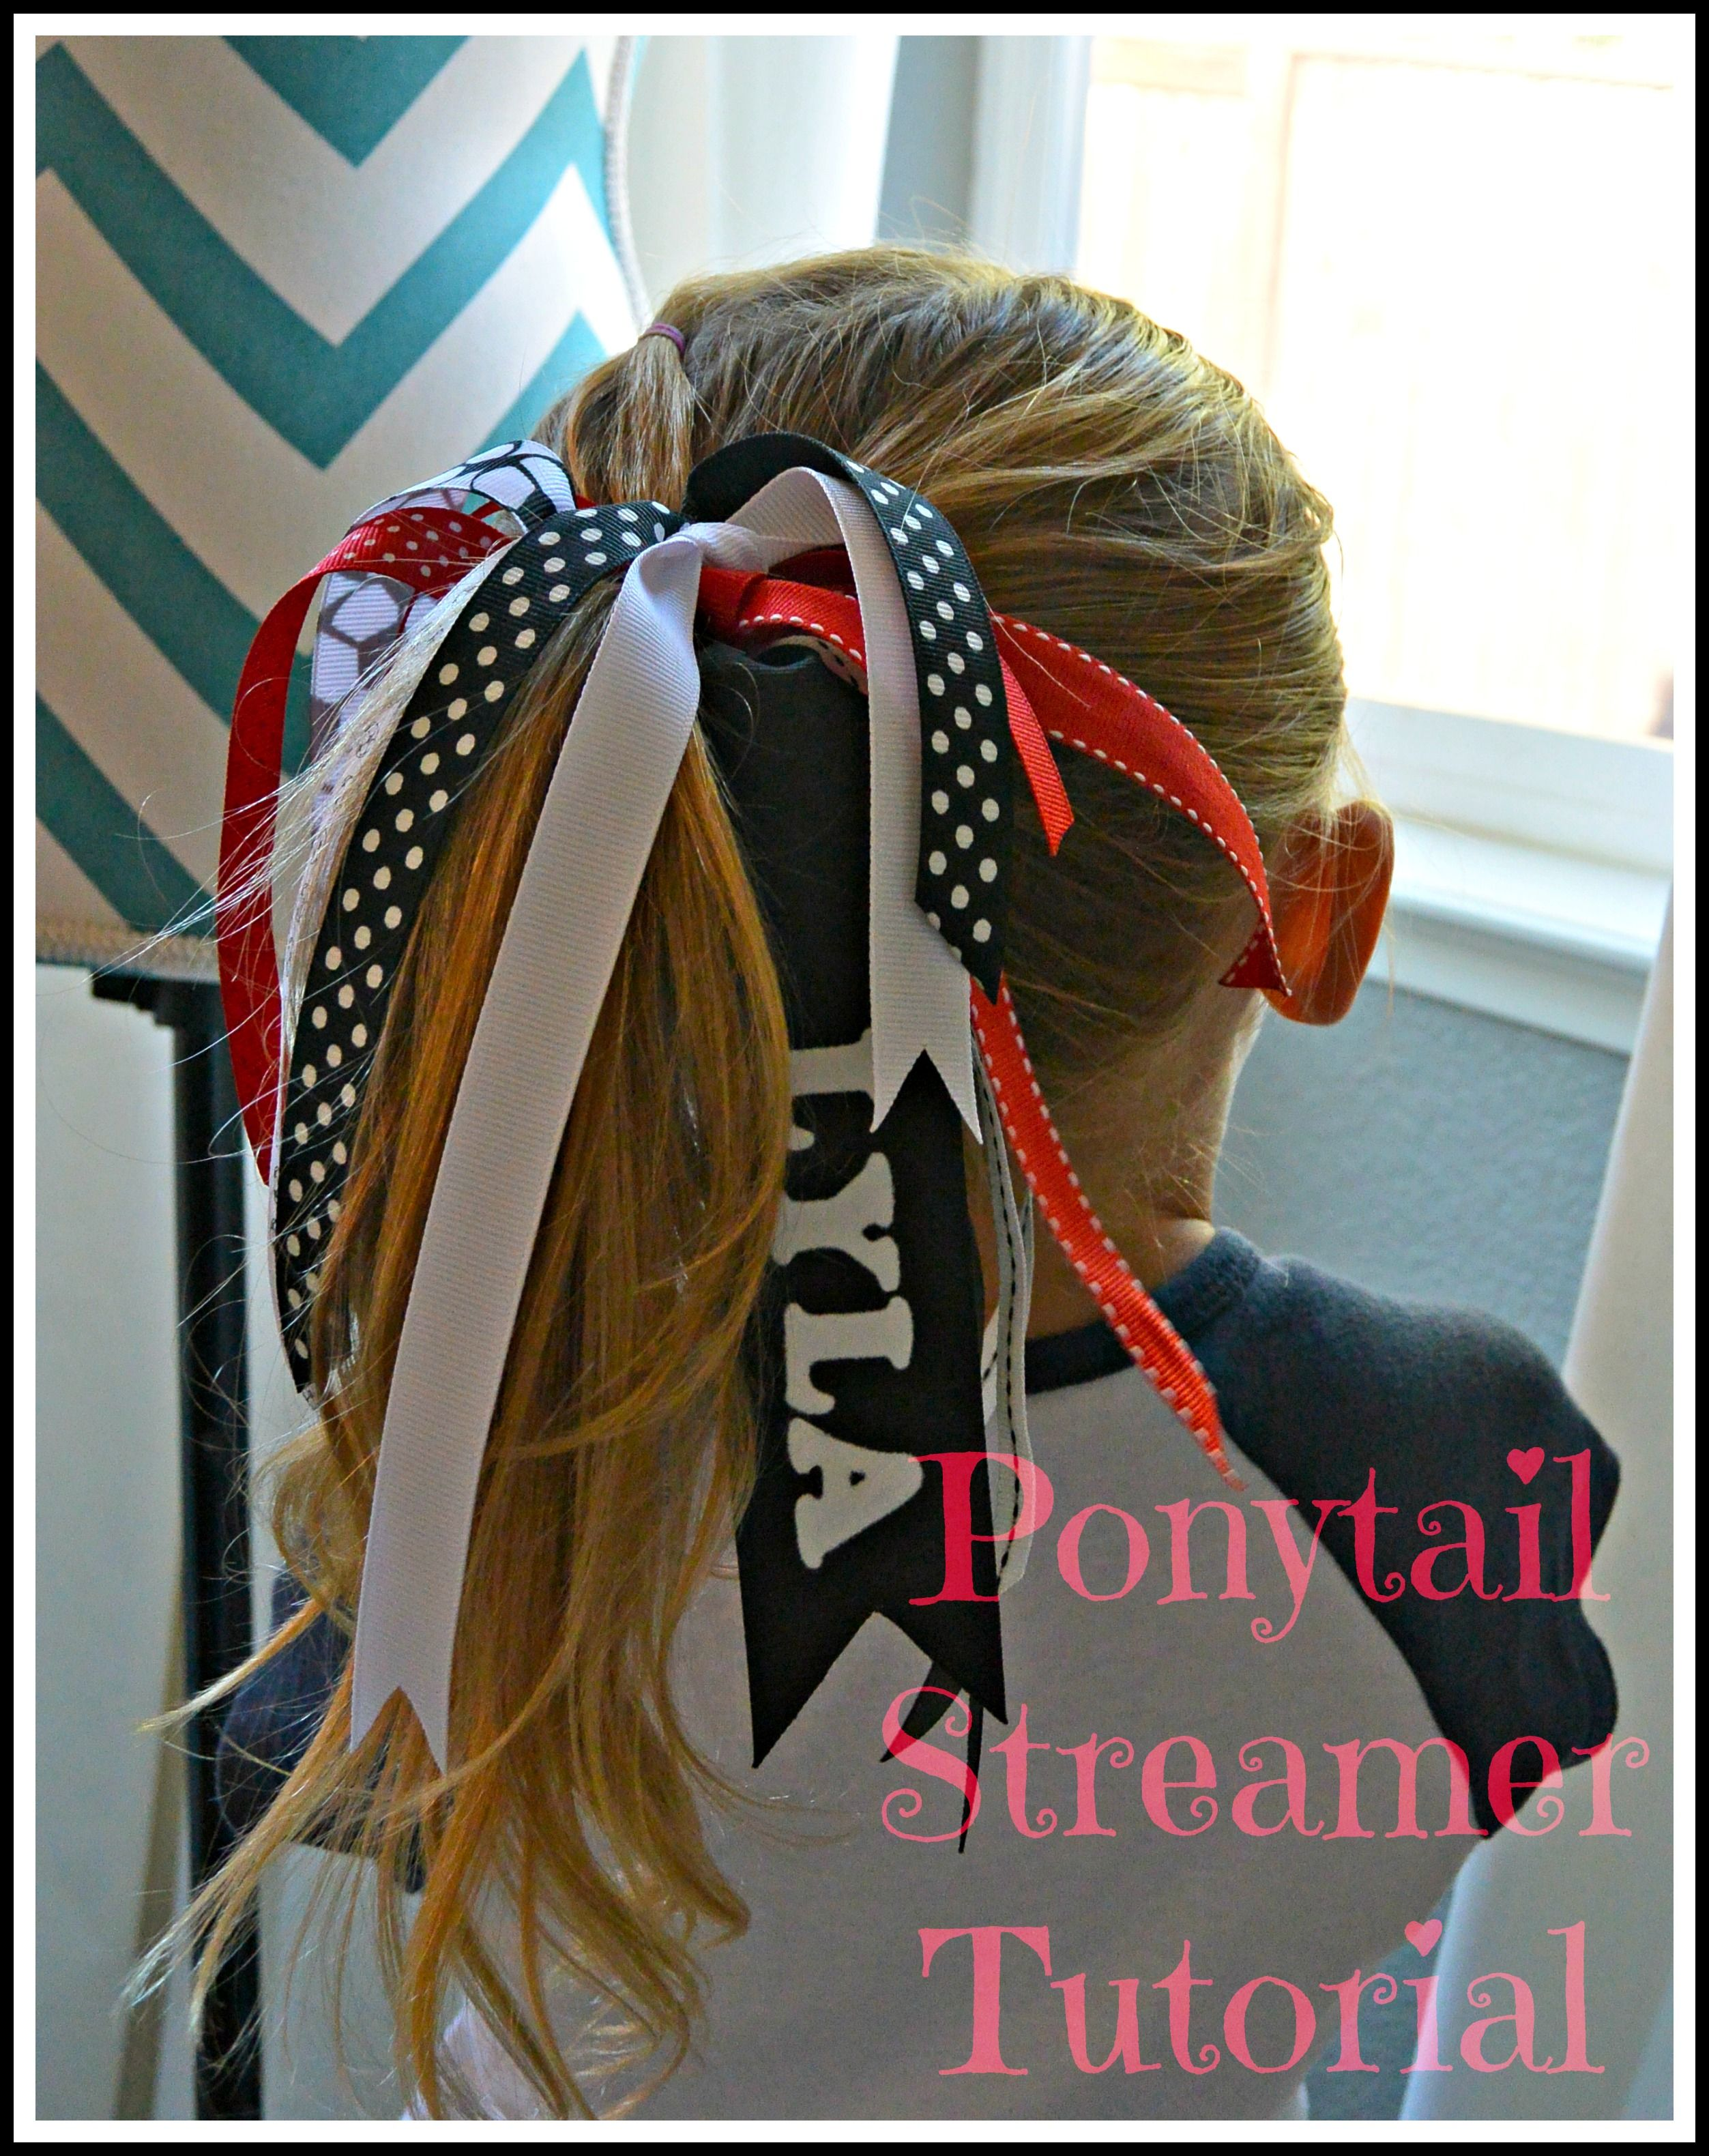 Ponytail Streamer Tutorial  Diy hairstyles, Ponytail streamer